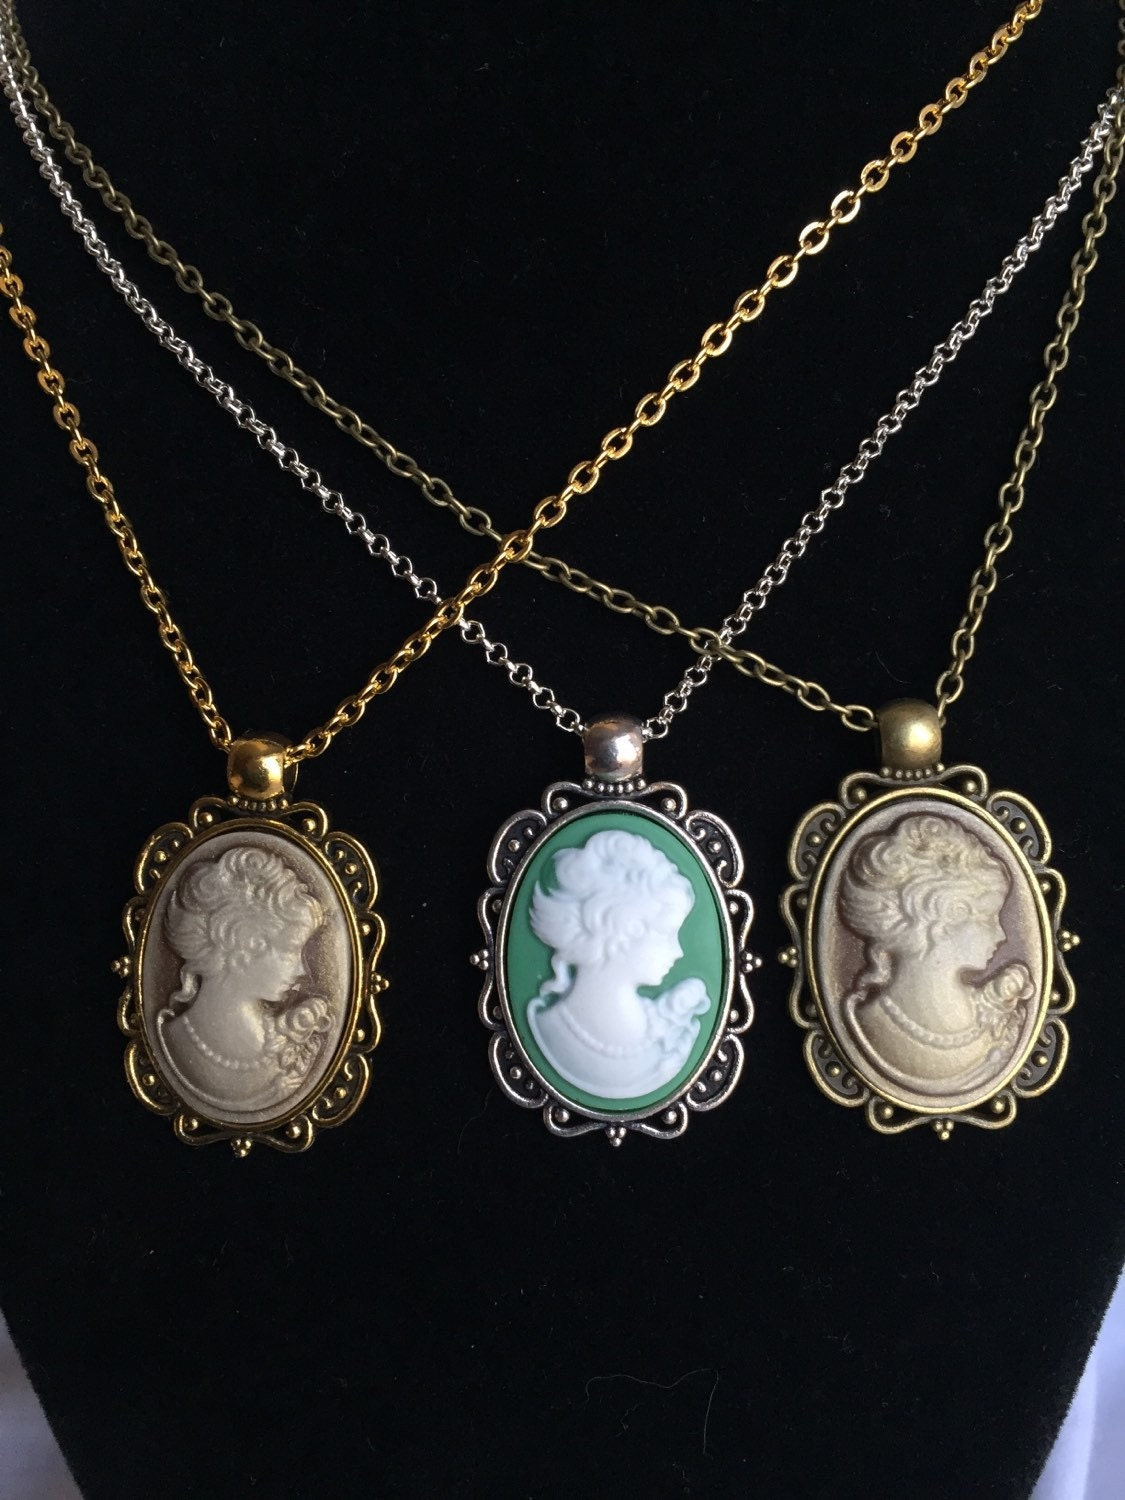 cameo cameo necklace cameo jewelry